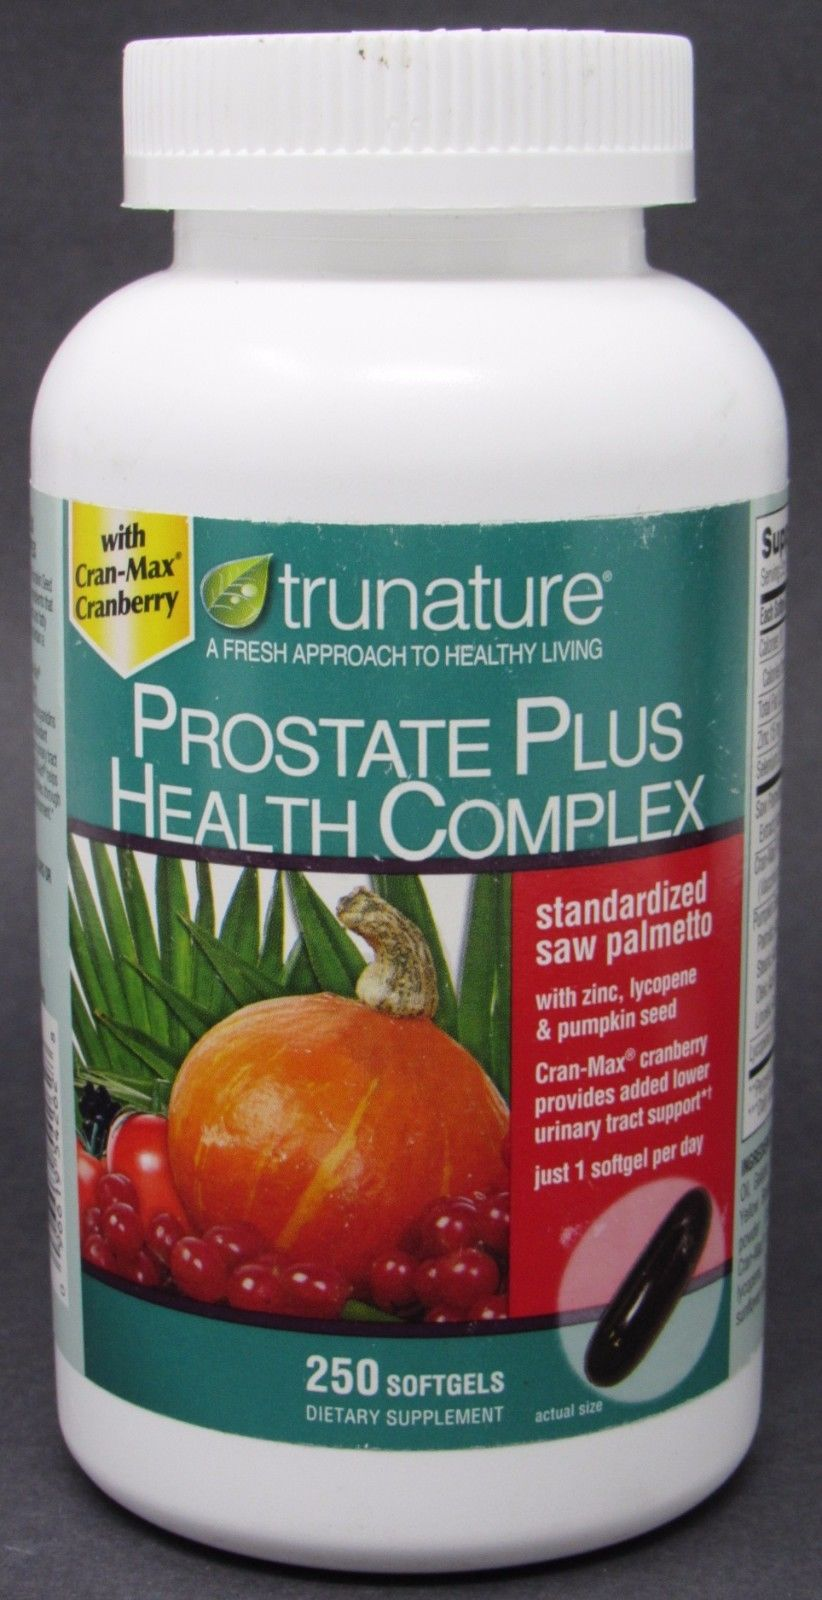 NEW 250-Softgels trunature Prostate Plus Health Complex Saw Palmetto + Zinc 2019